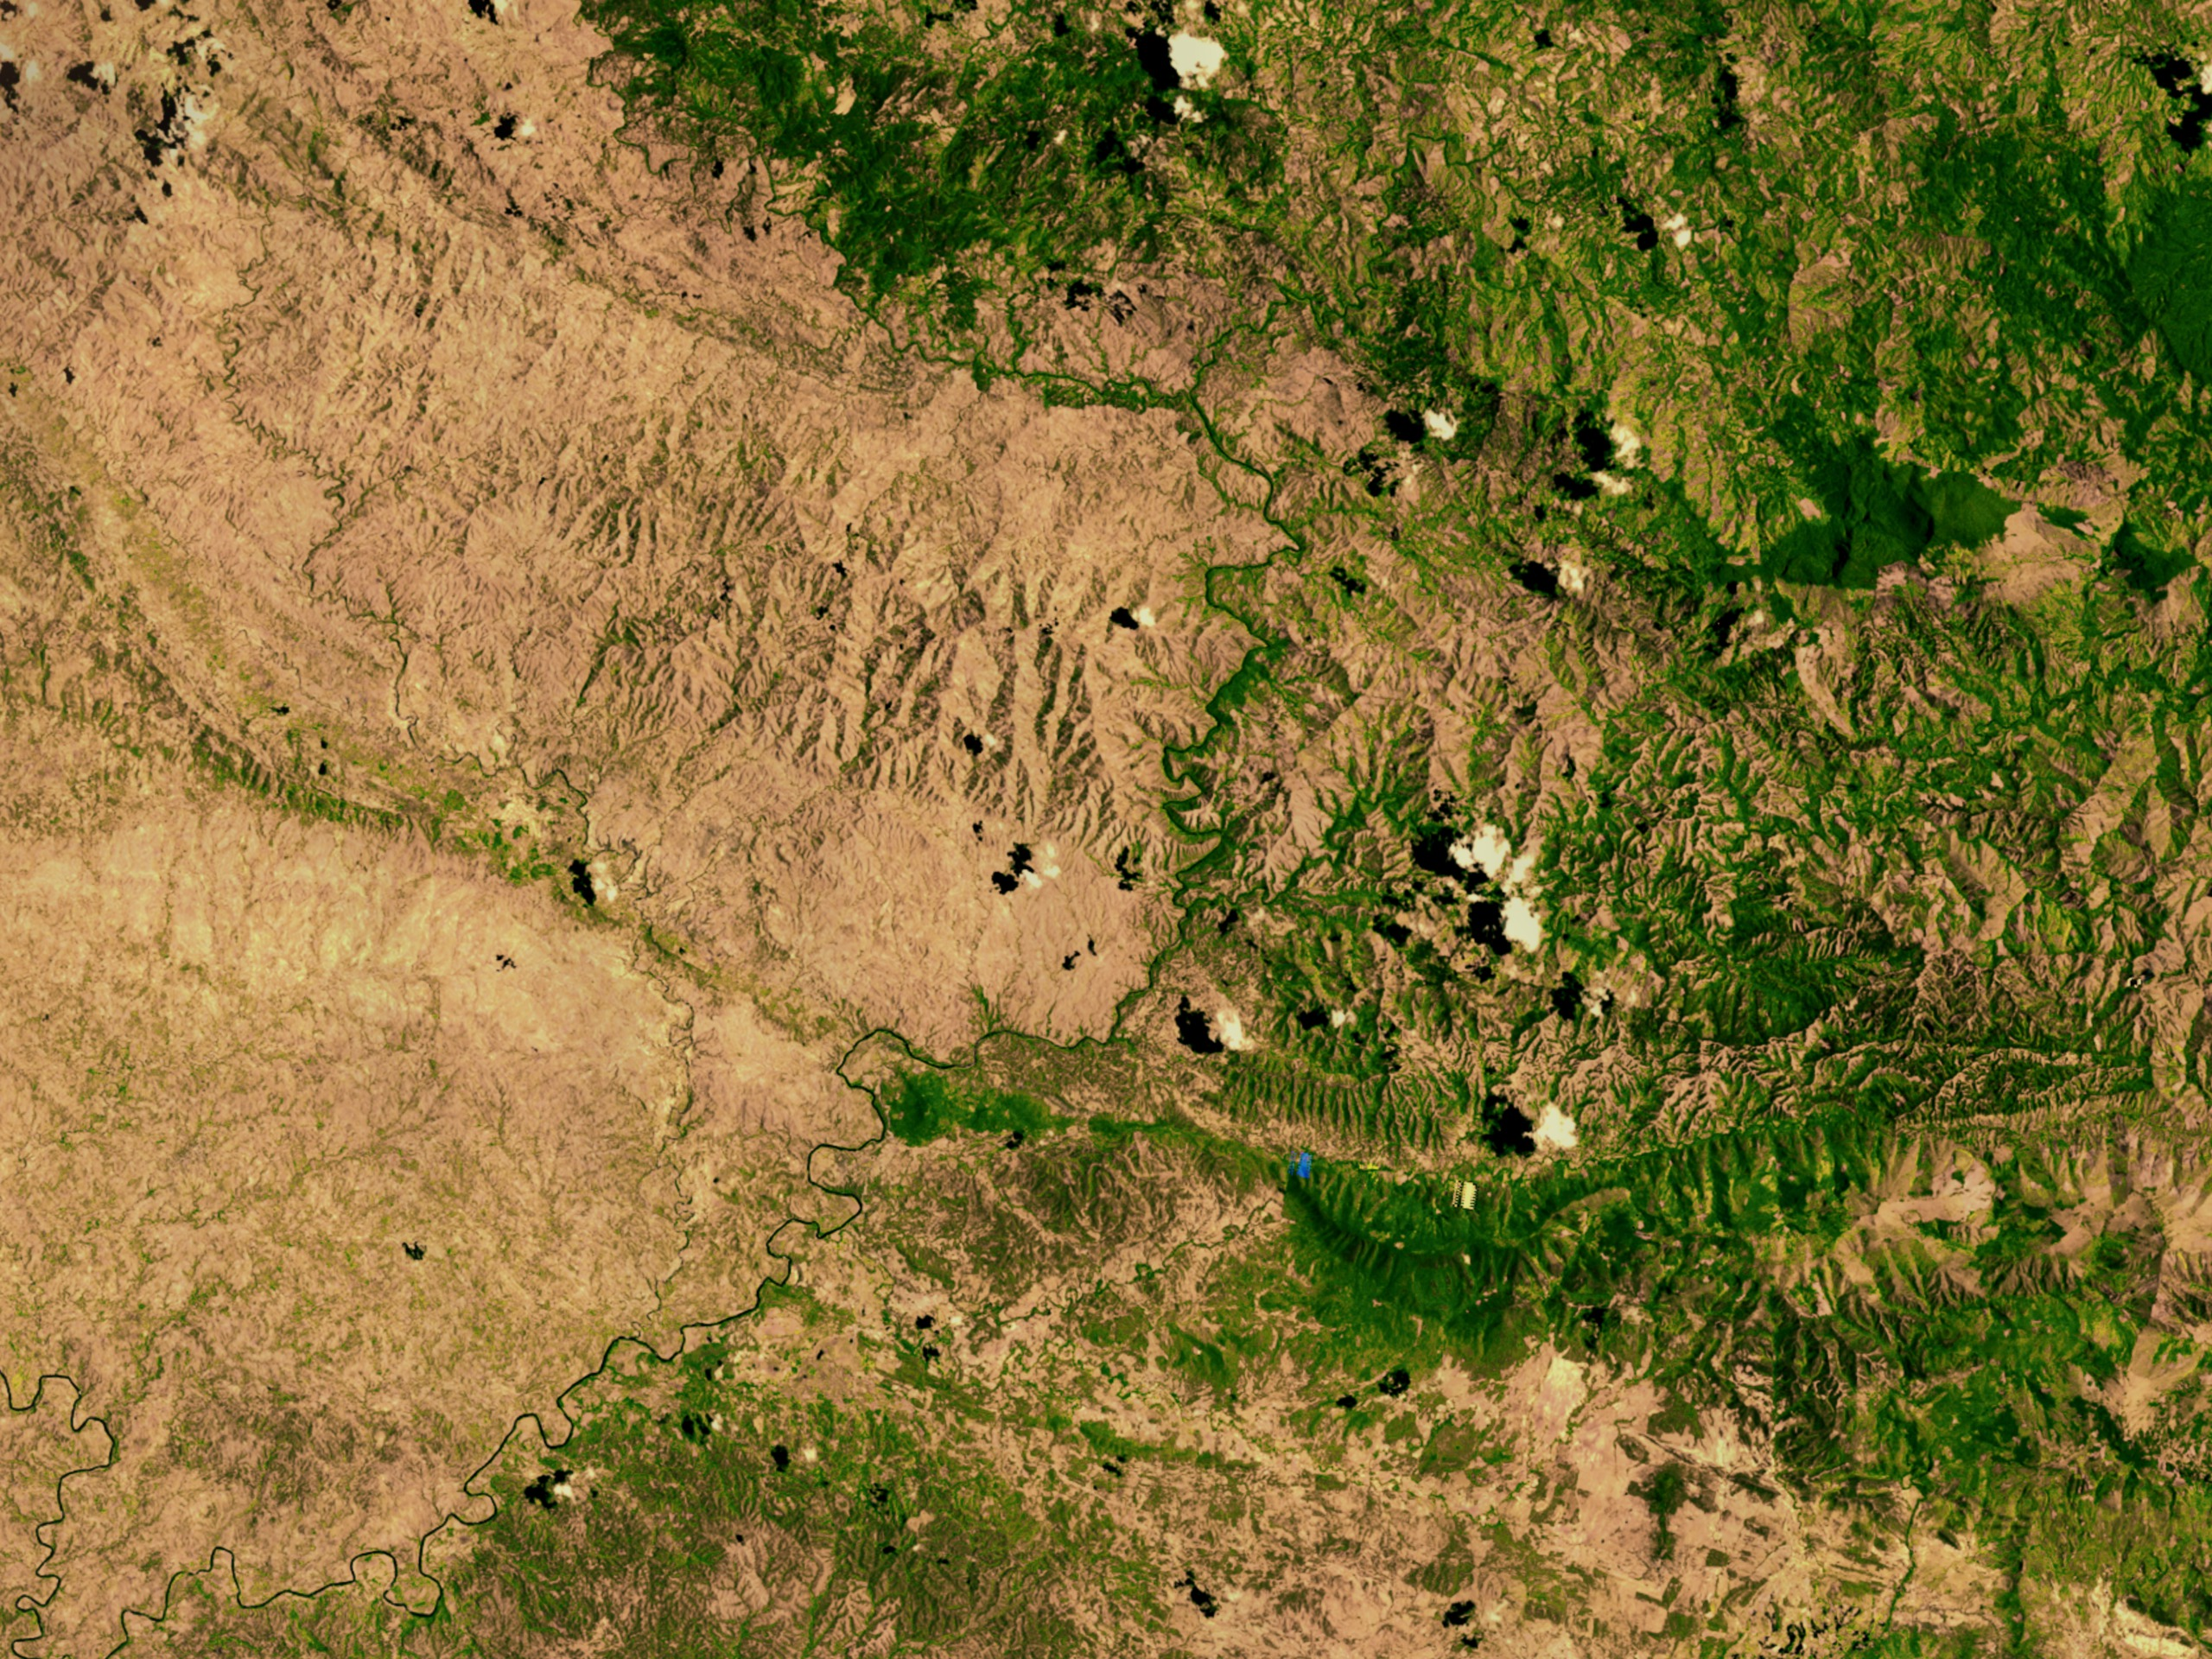 Green Forested Domincan Republic and Brown Deforested Haiti as viewed from space.